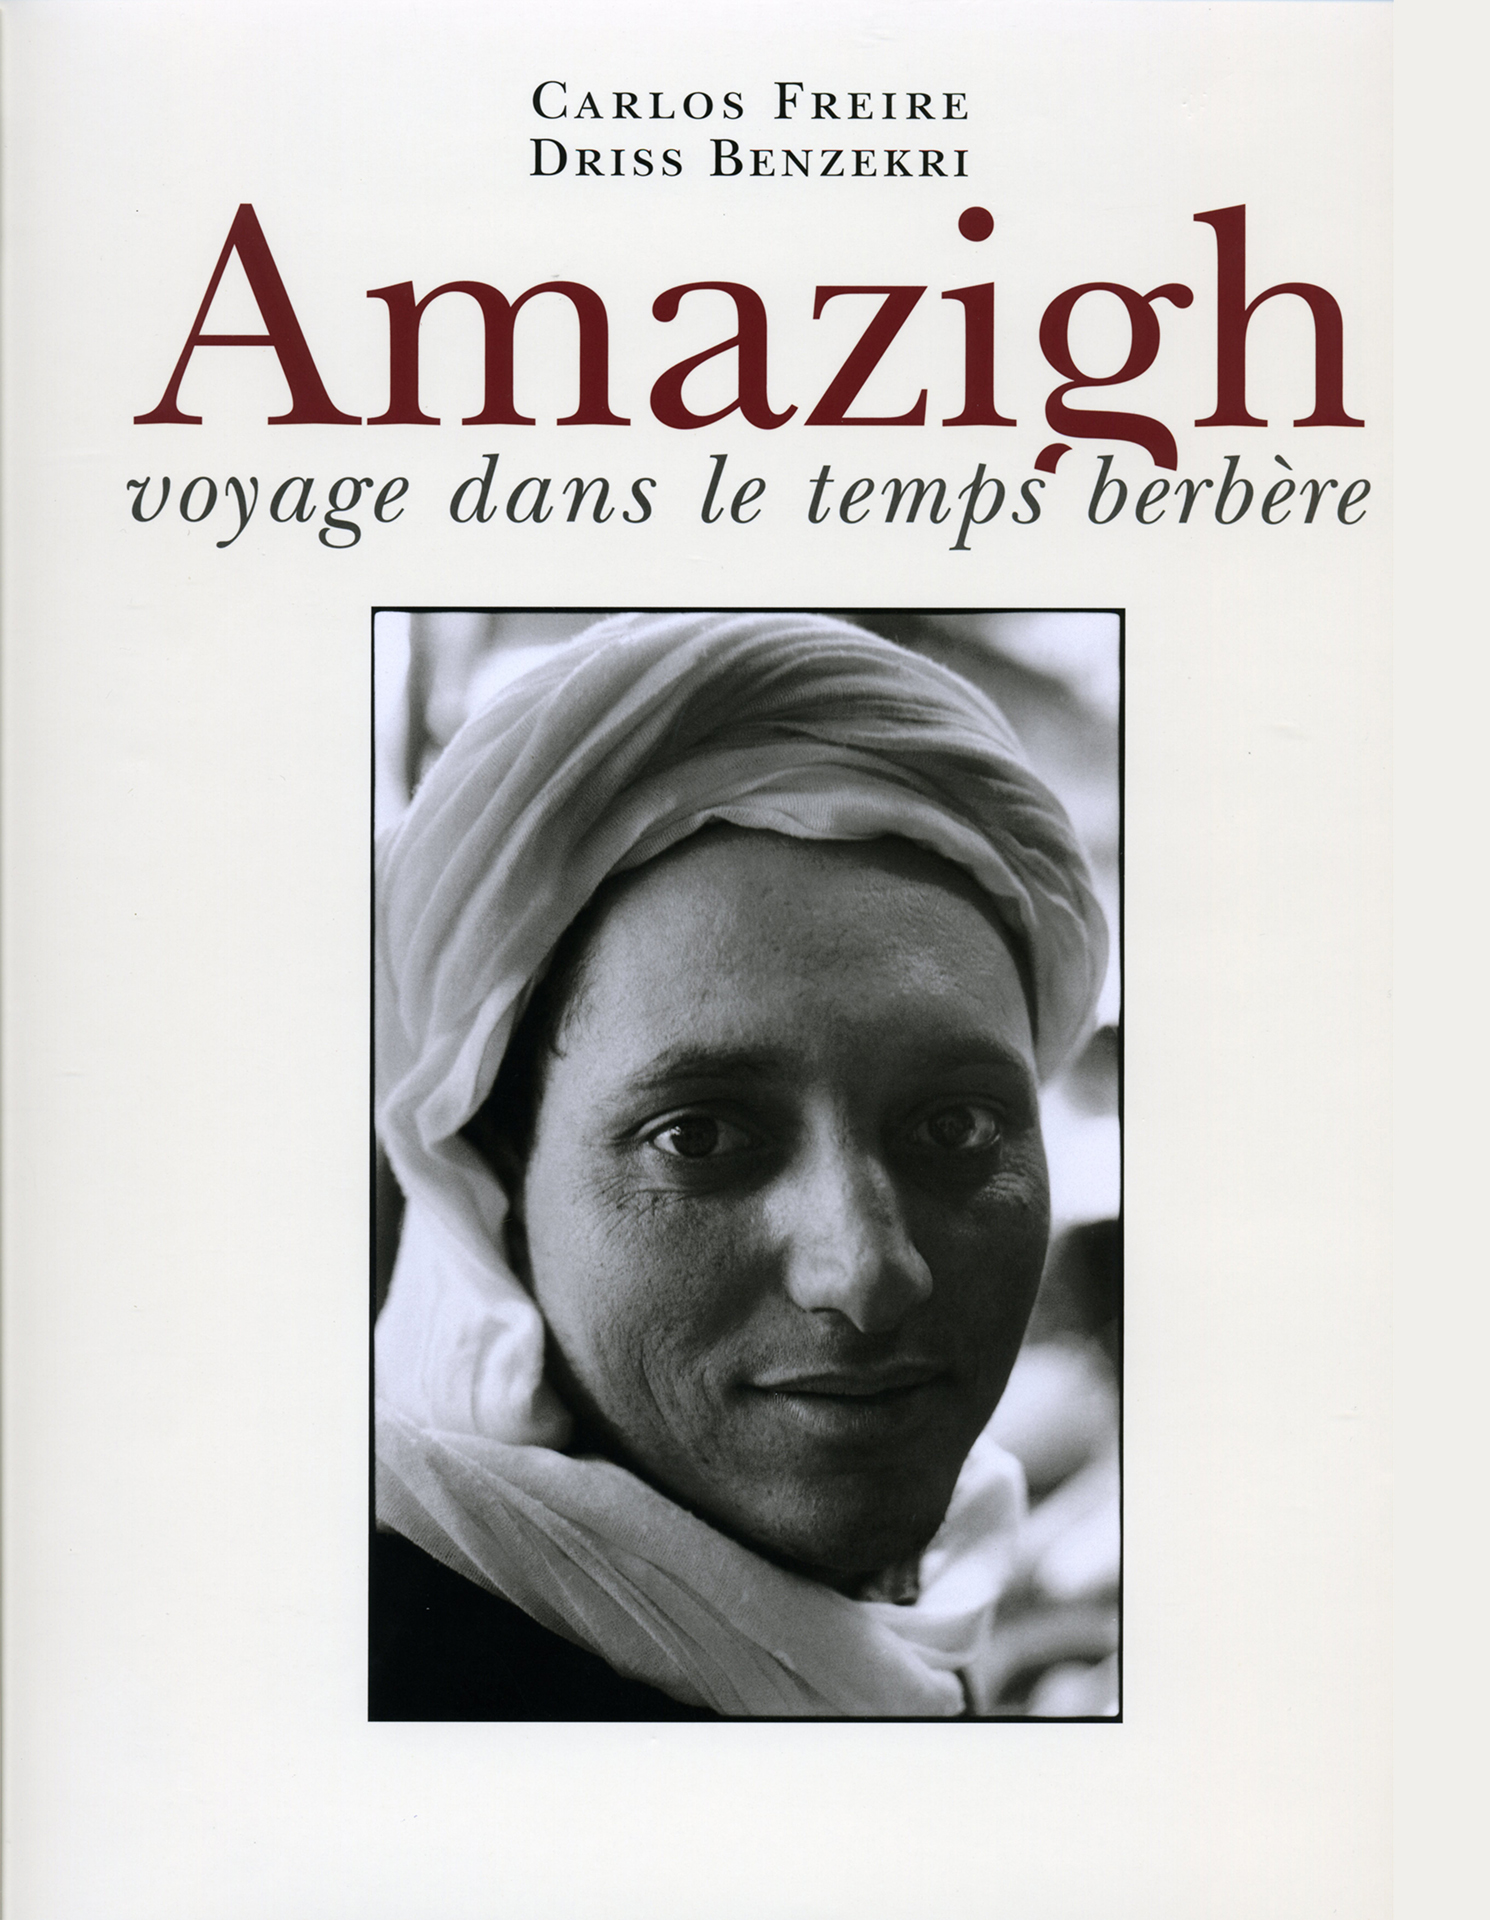 Amazigh, in Morocco with Driss Benzekri